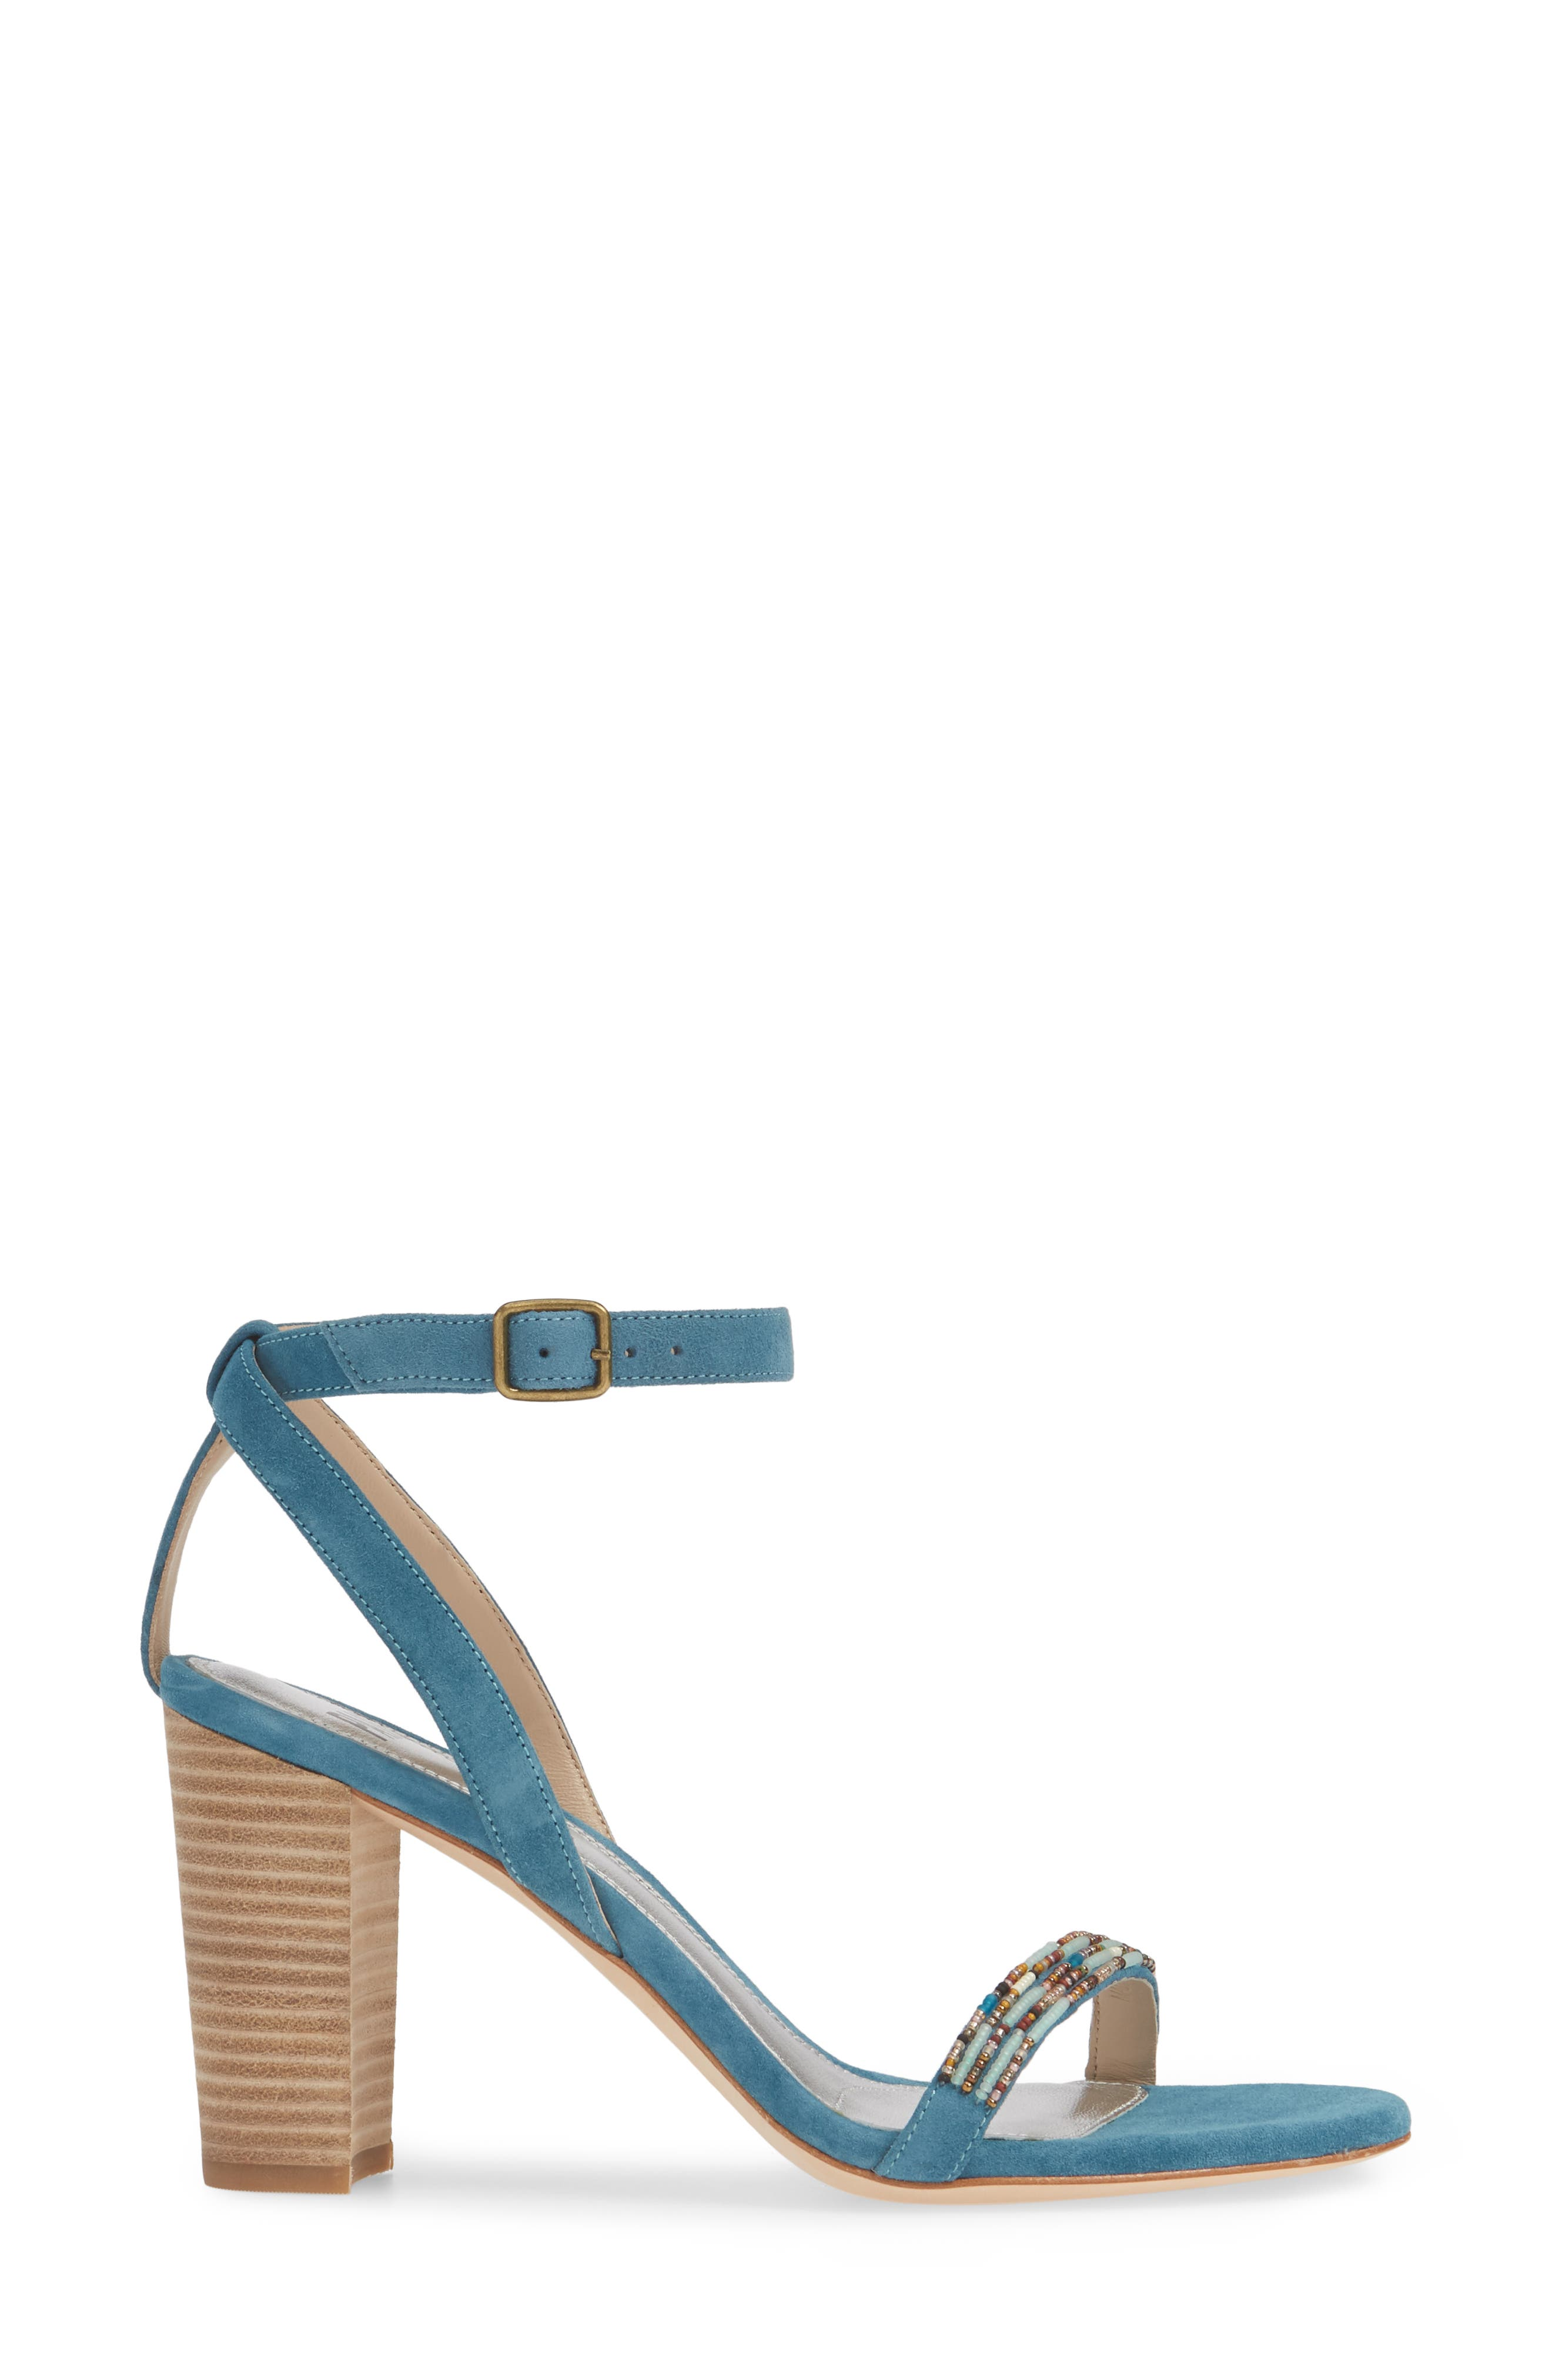 PAIGE, Gabriella Beaded Sandal, Alternate thumbnail 3, color, BLUE